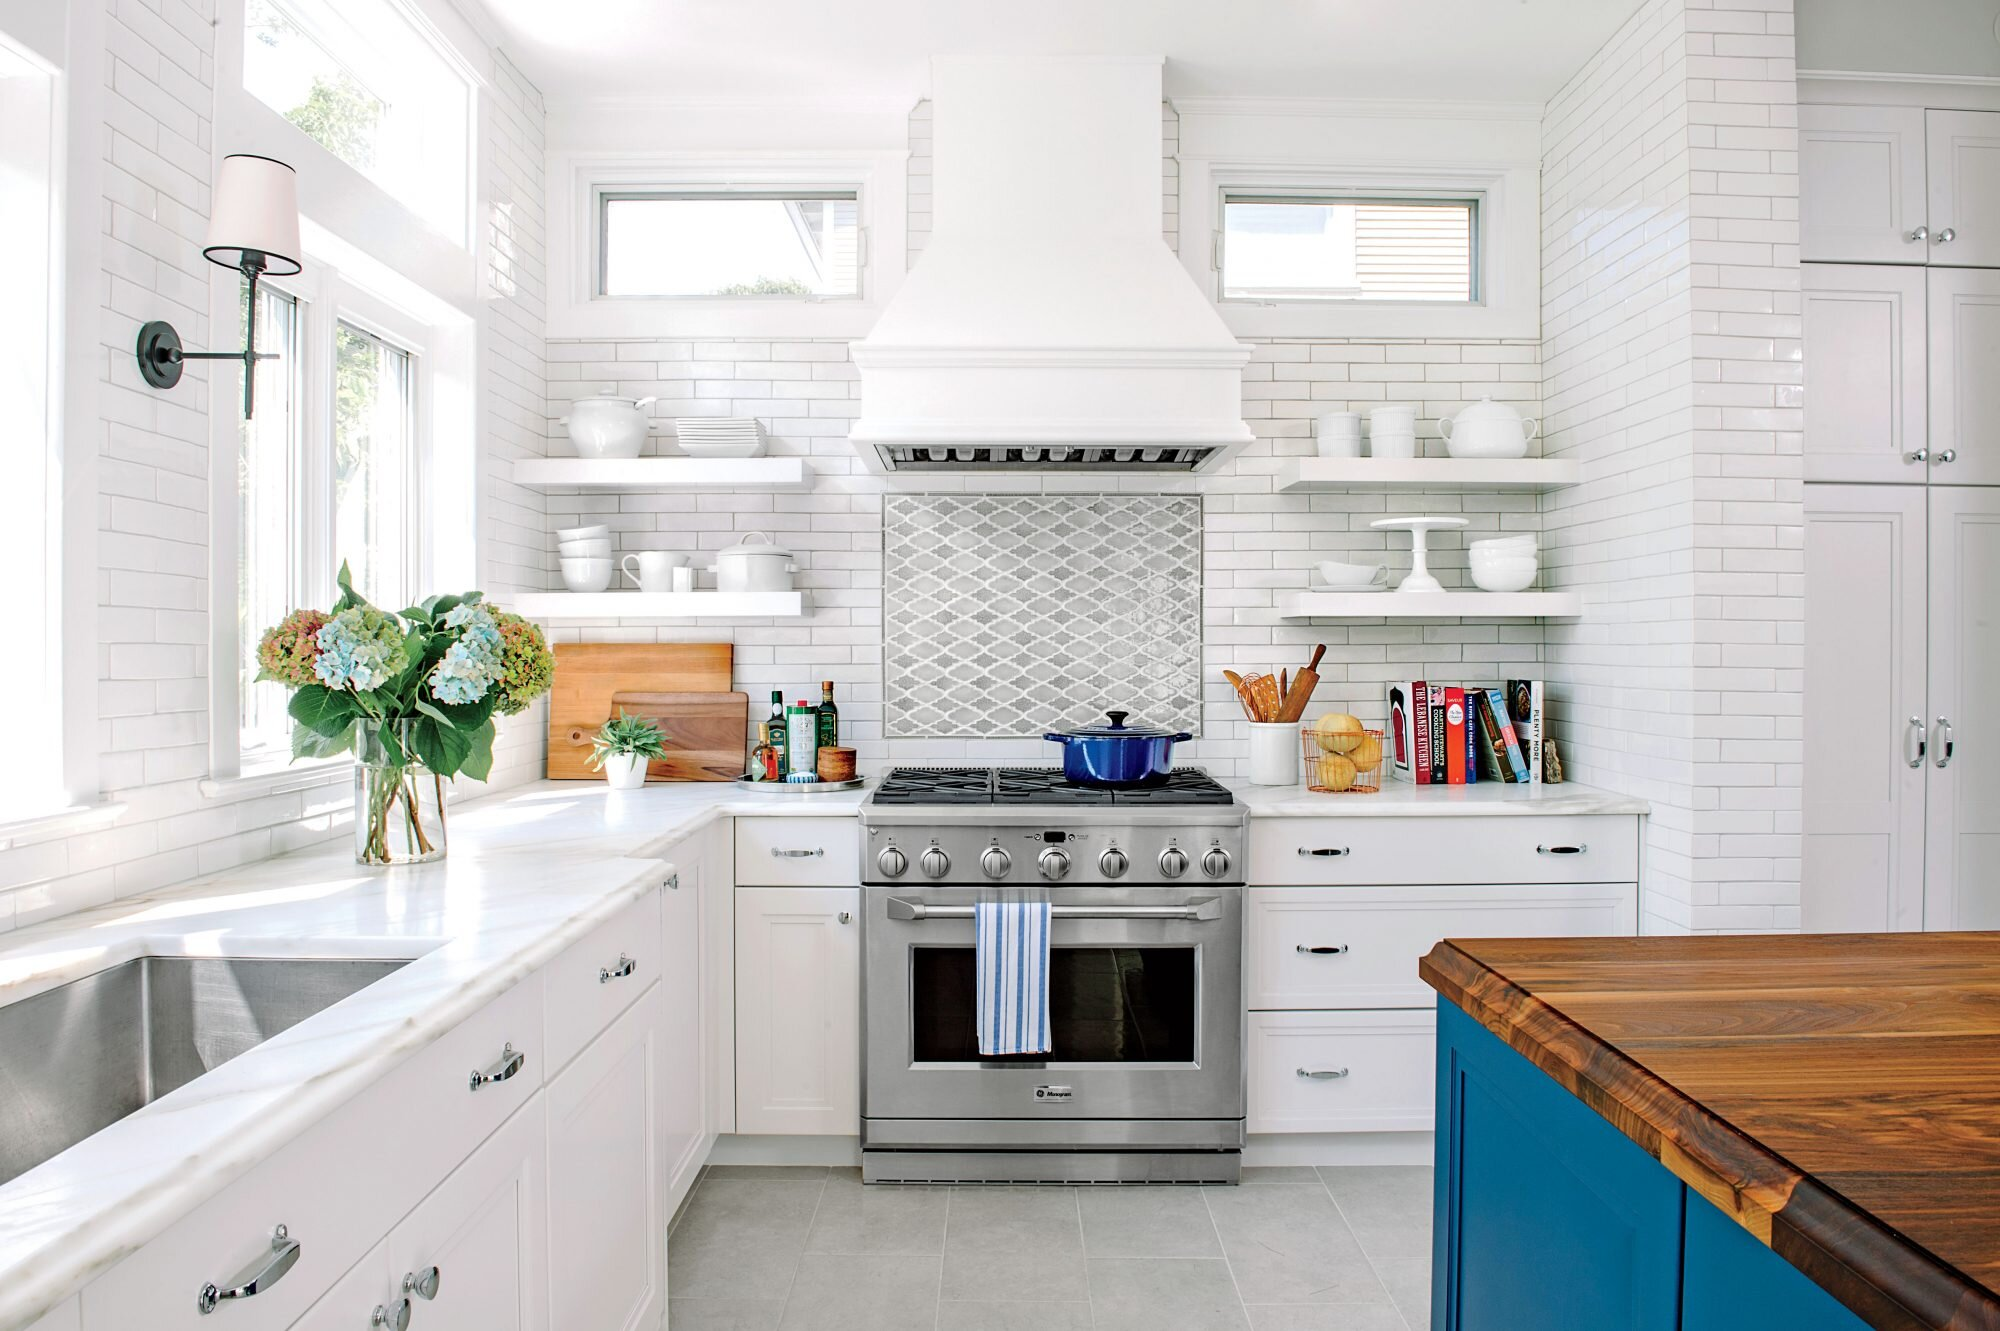 All-Time Favorite White Kitchens on country kitchen wallpaper, country kitchen area rugs, country kitchen decorative accessories, country kitchen paint colors, country kitchen countertops, country kitchen lighting fixtures, country kitchen cabinetry, country kitchen flooring, country kitchen ceilings, country kitchen floor designs,